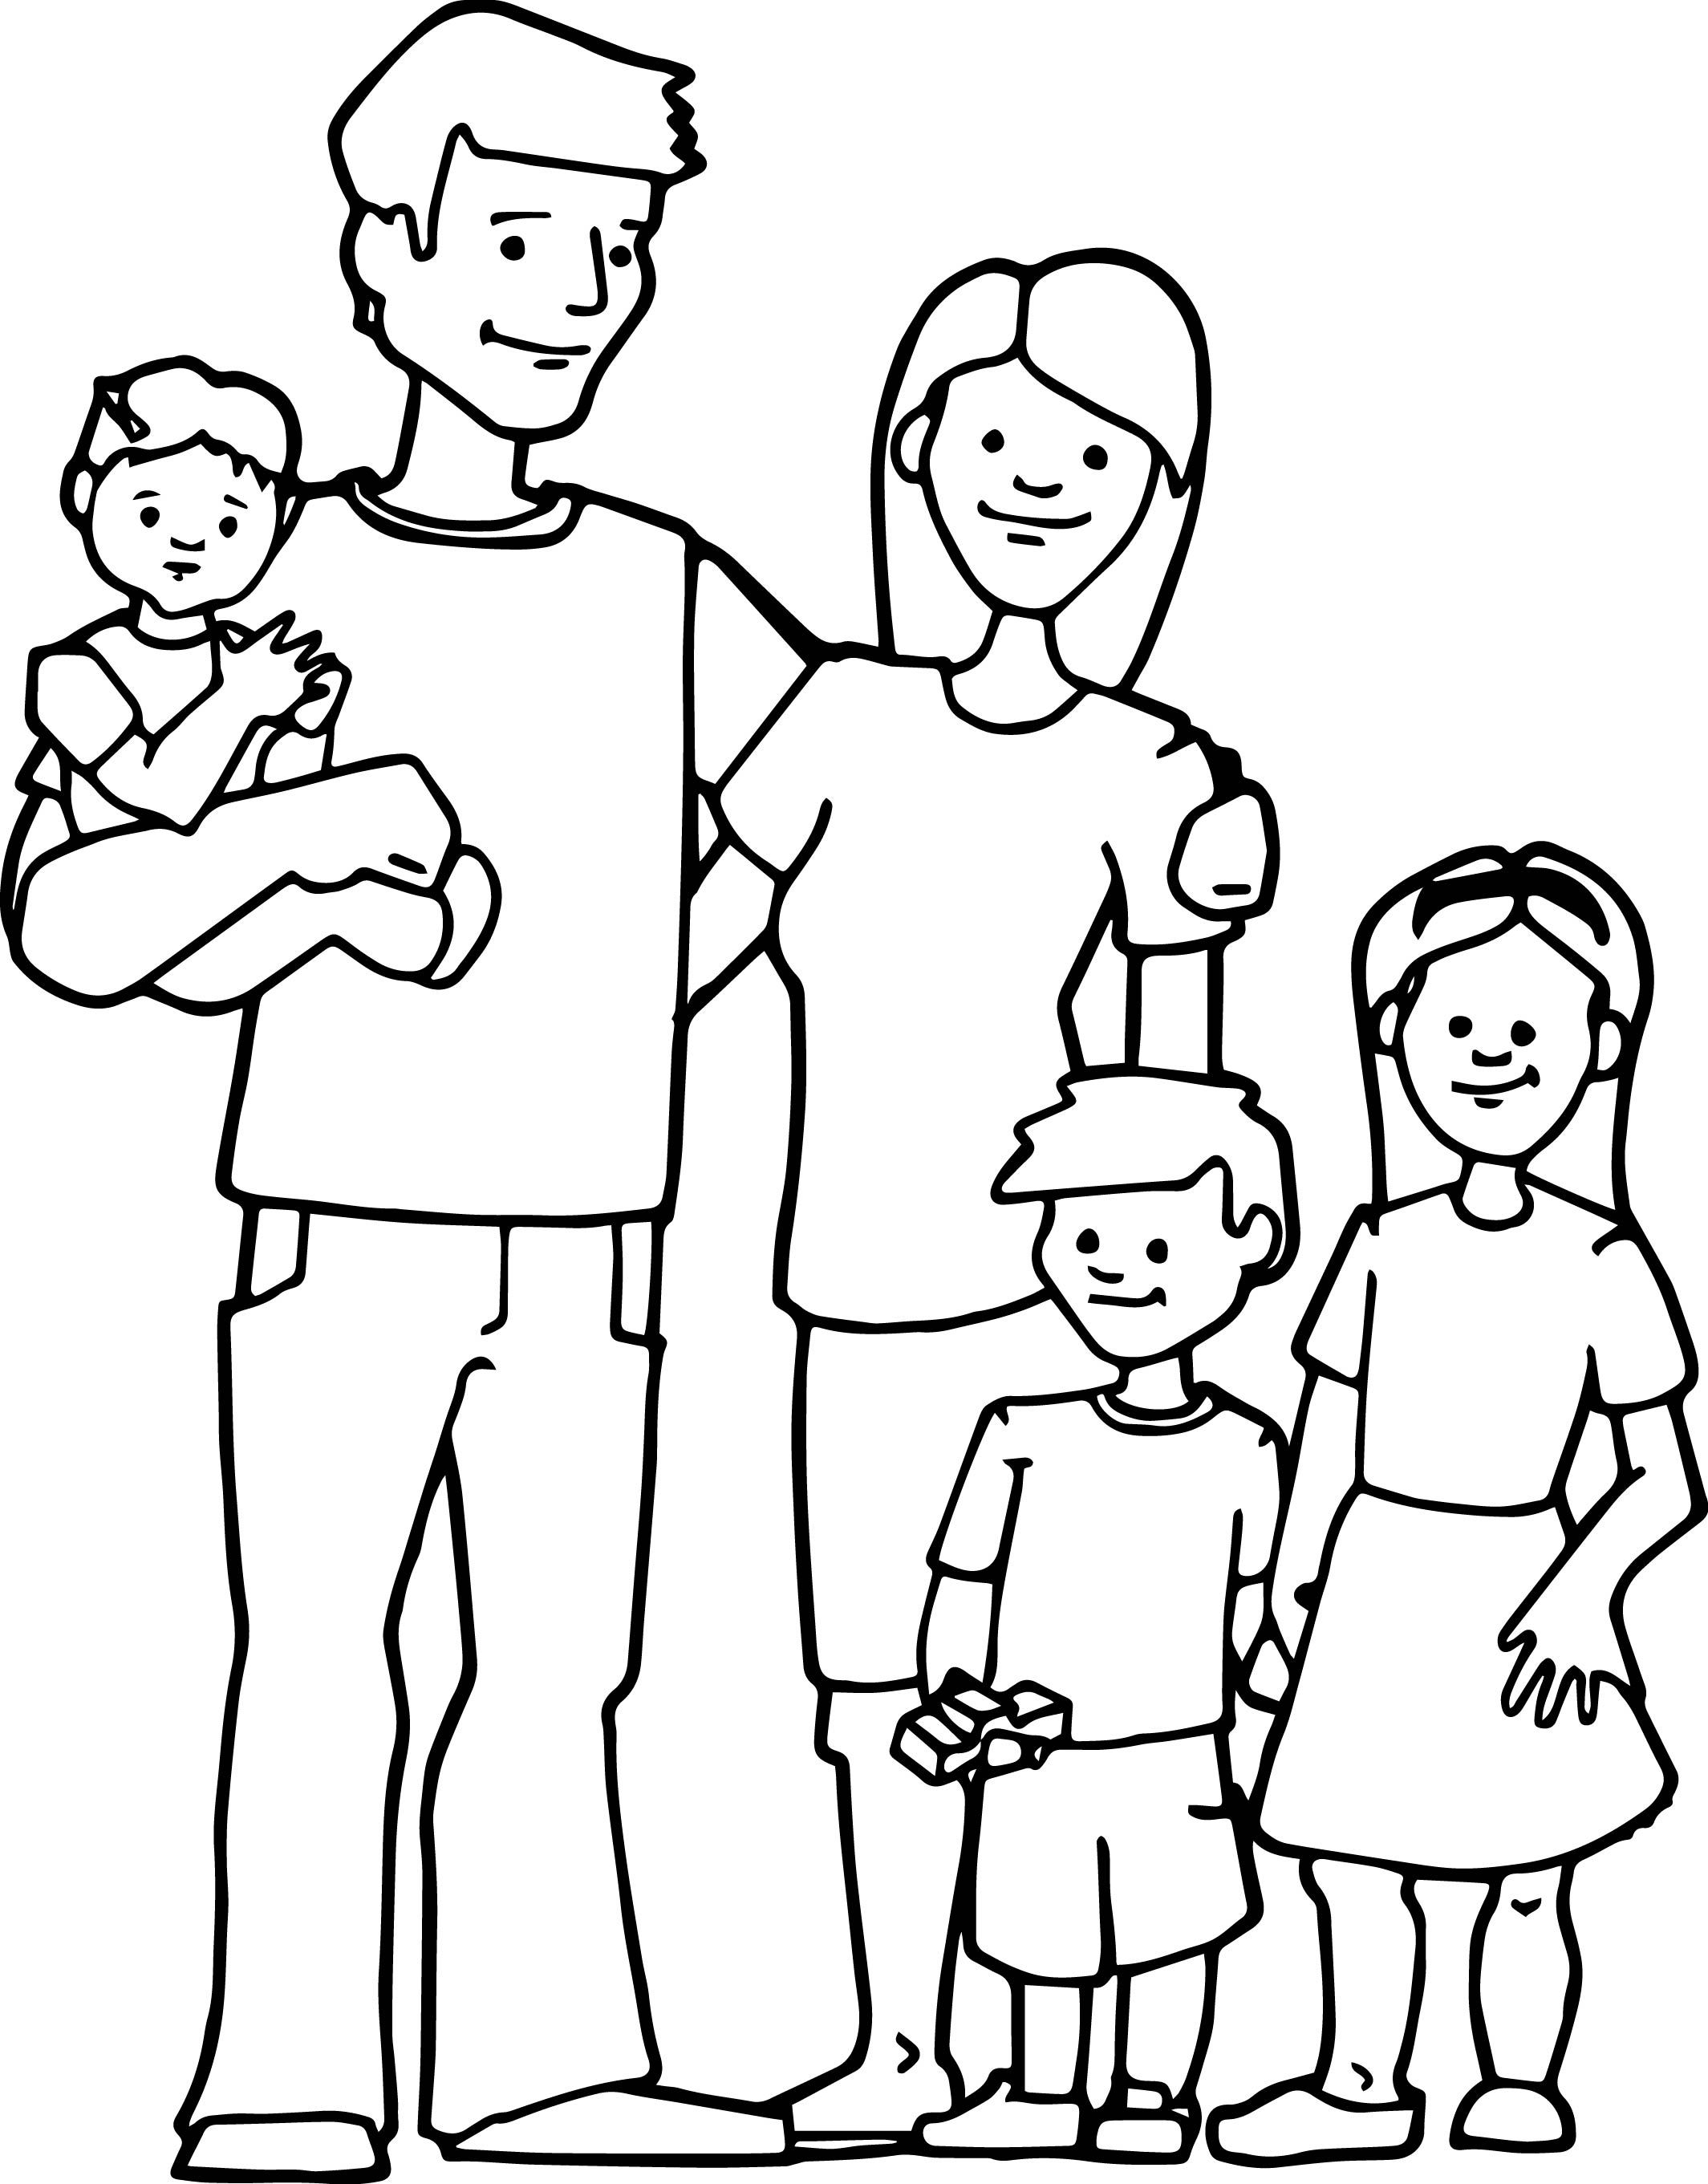 Awesome Family Kids Coloring Page Family Coloring Pages